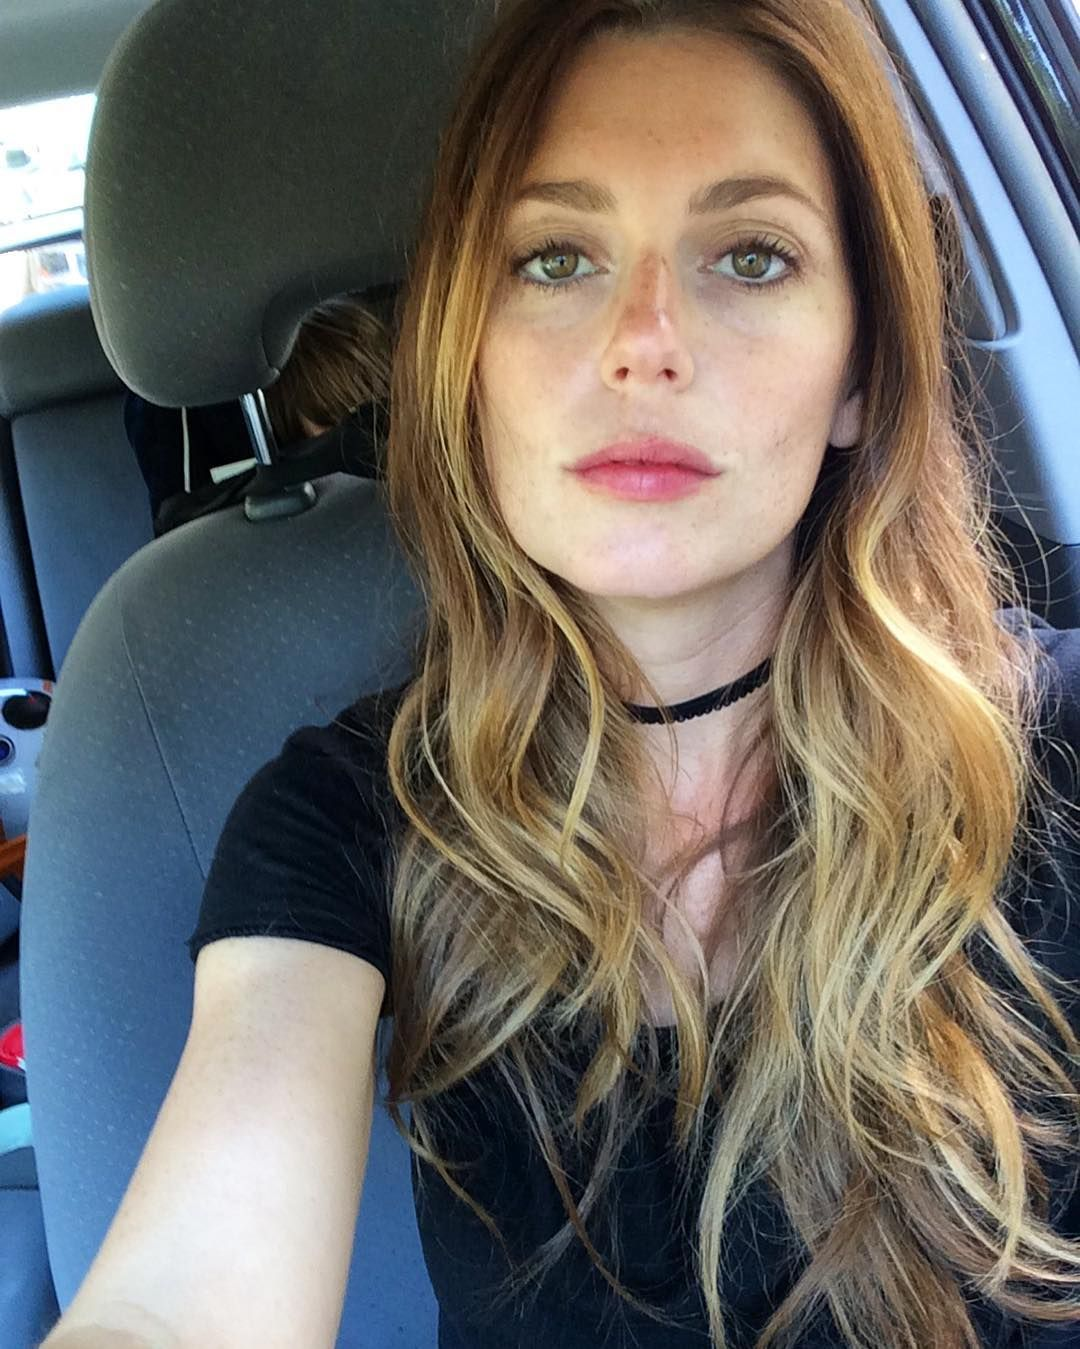 Hacked Diora Baird nude photos 2019